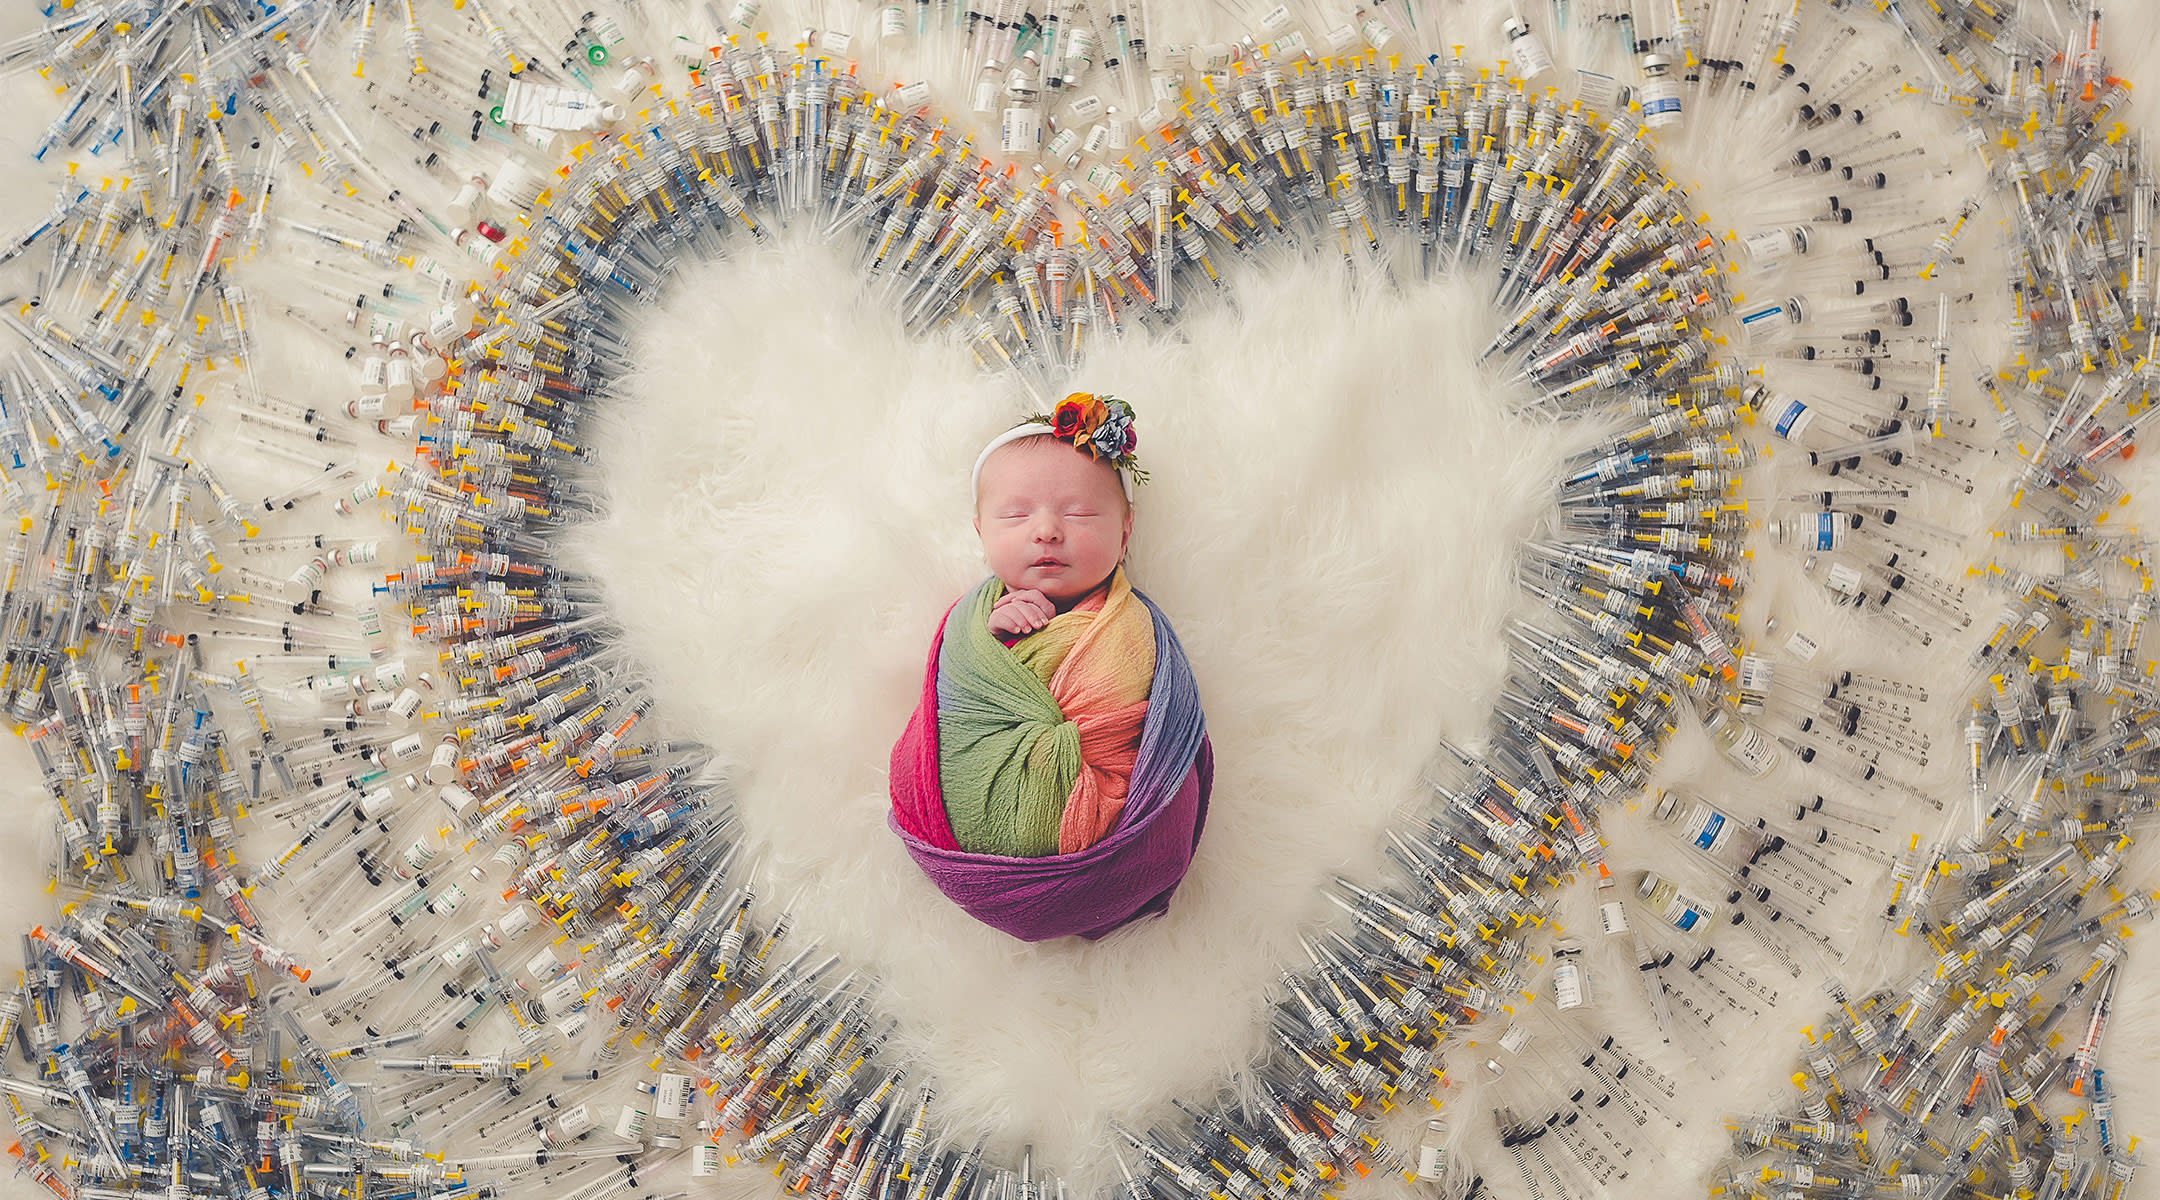 image of one couple's rainbow baby and the process of ivf represented in the fertility treatment shots.